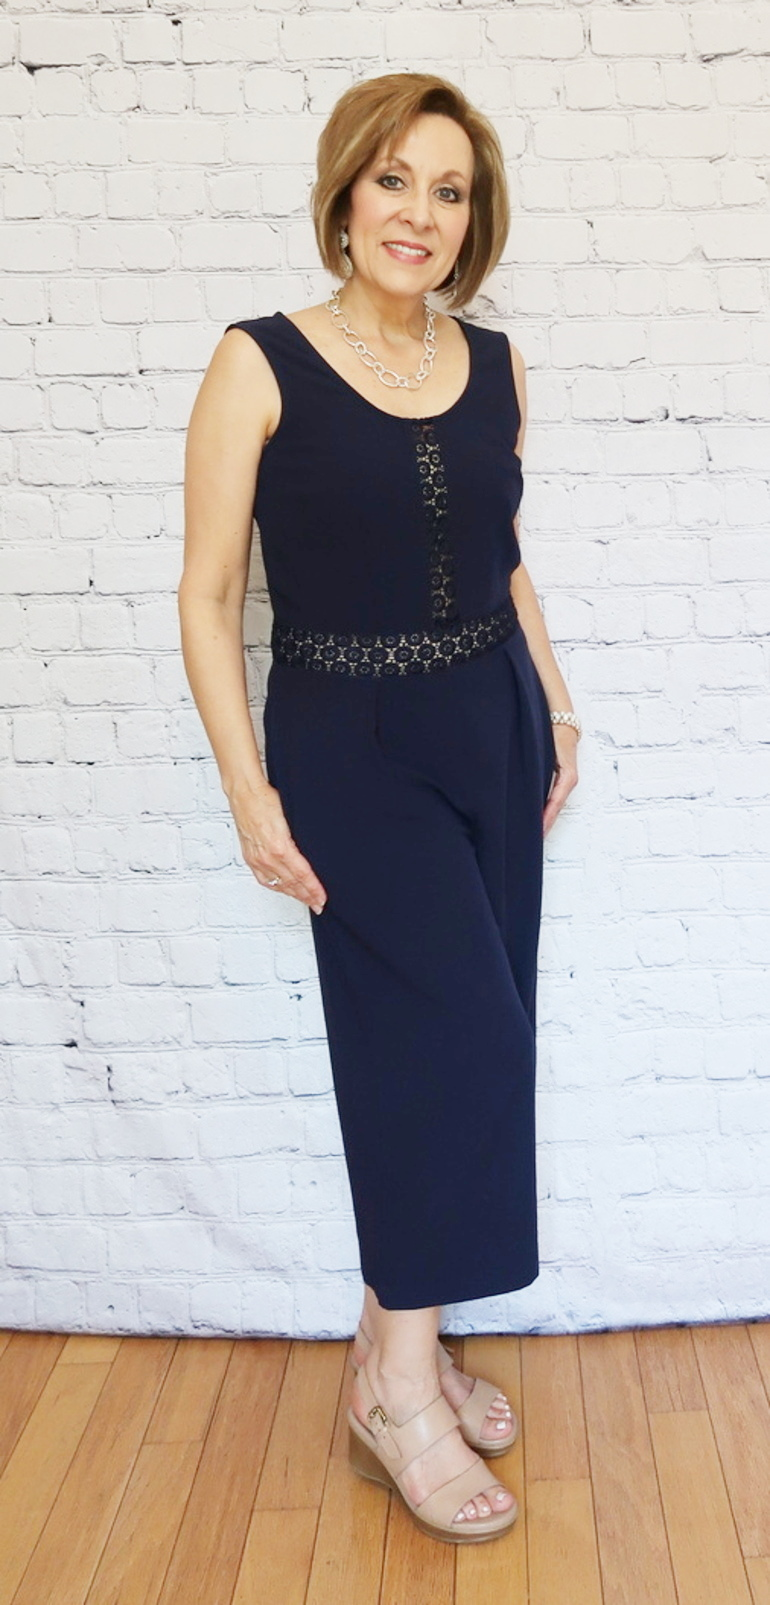 50 With Flair, Navy Blue Jumpsuit, Over 40 Fashion, Over 50 Fashion